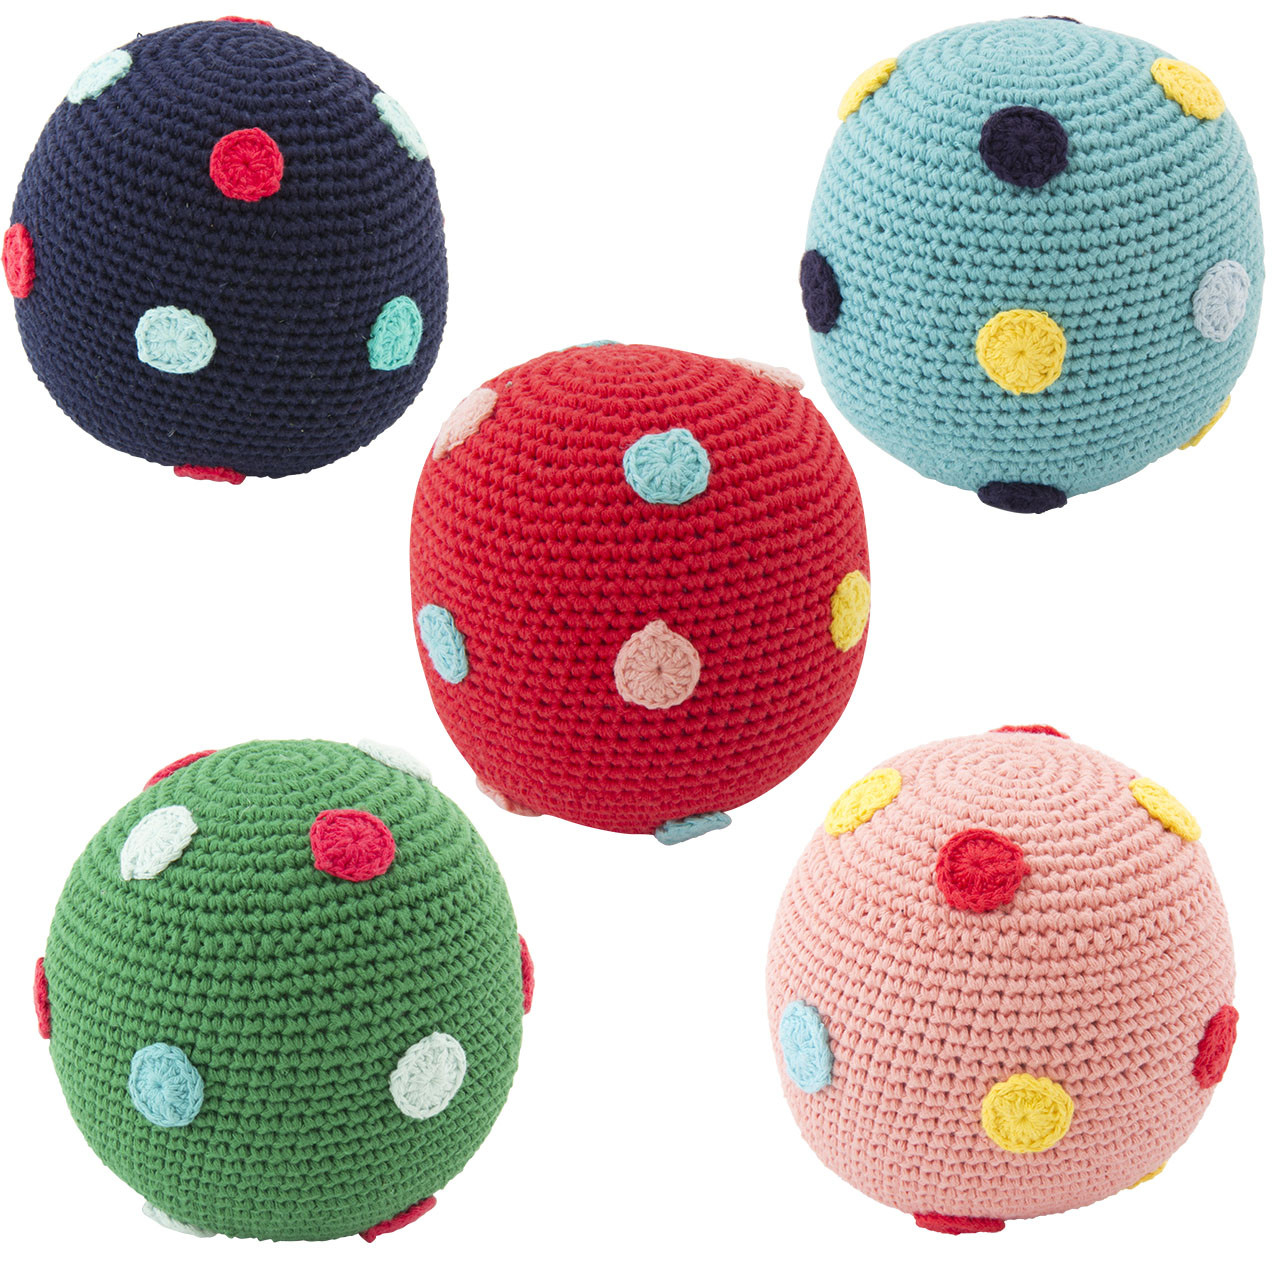 Crochet Ball Pattern Crochet Ball Large Dots With Rattle Global Affairs